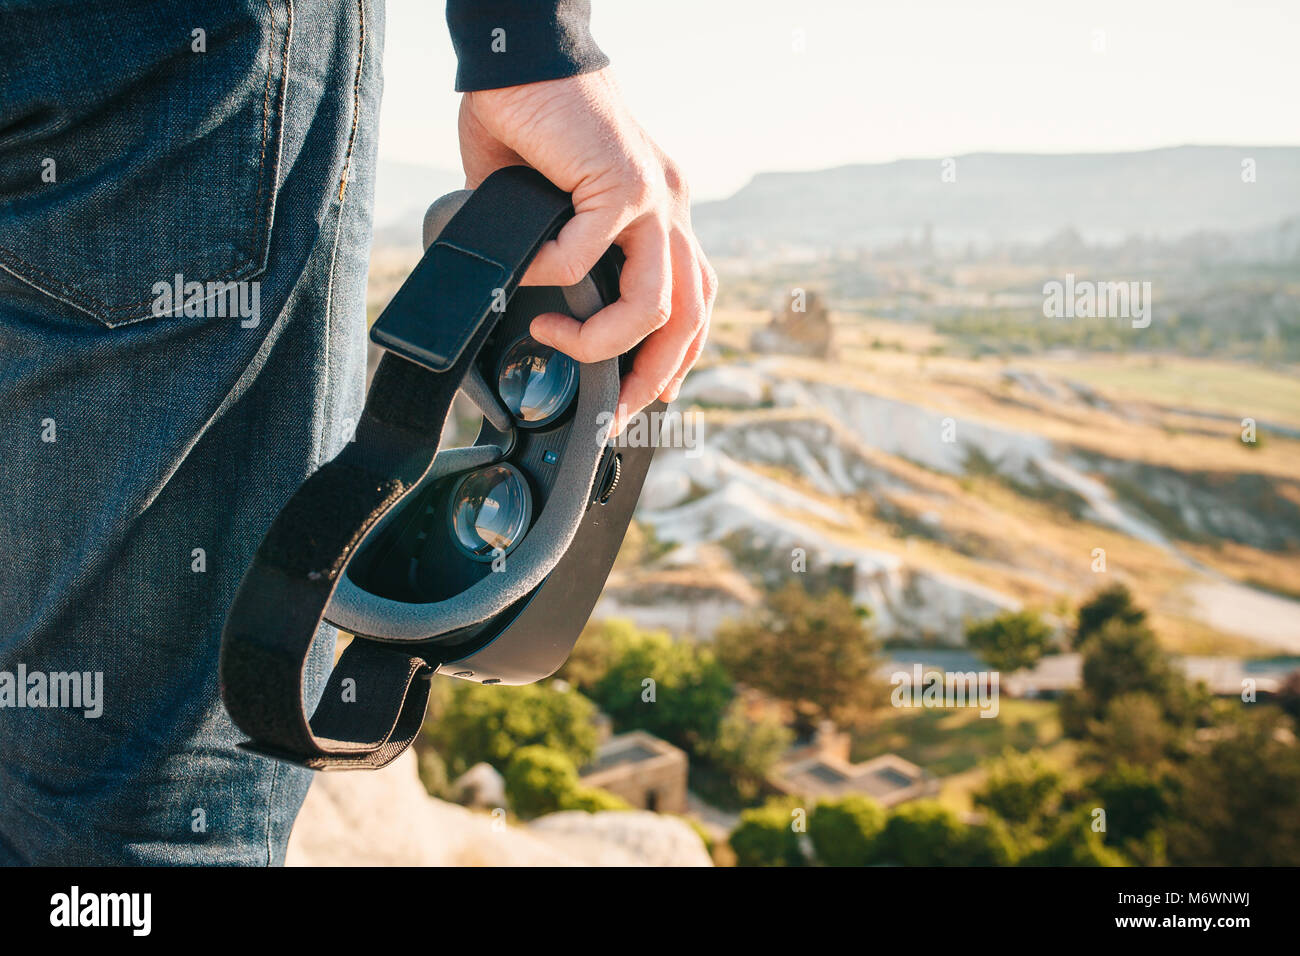 Glasses of virtual reality. Future technology concept. Modern imaging technology. - Stock Image